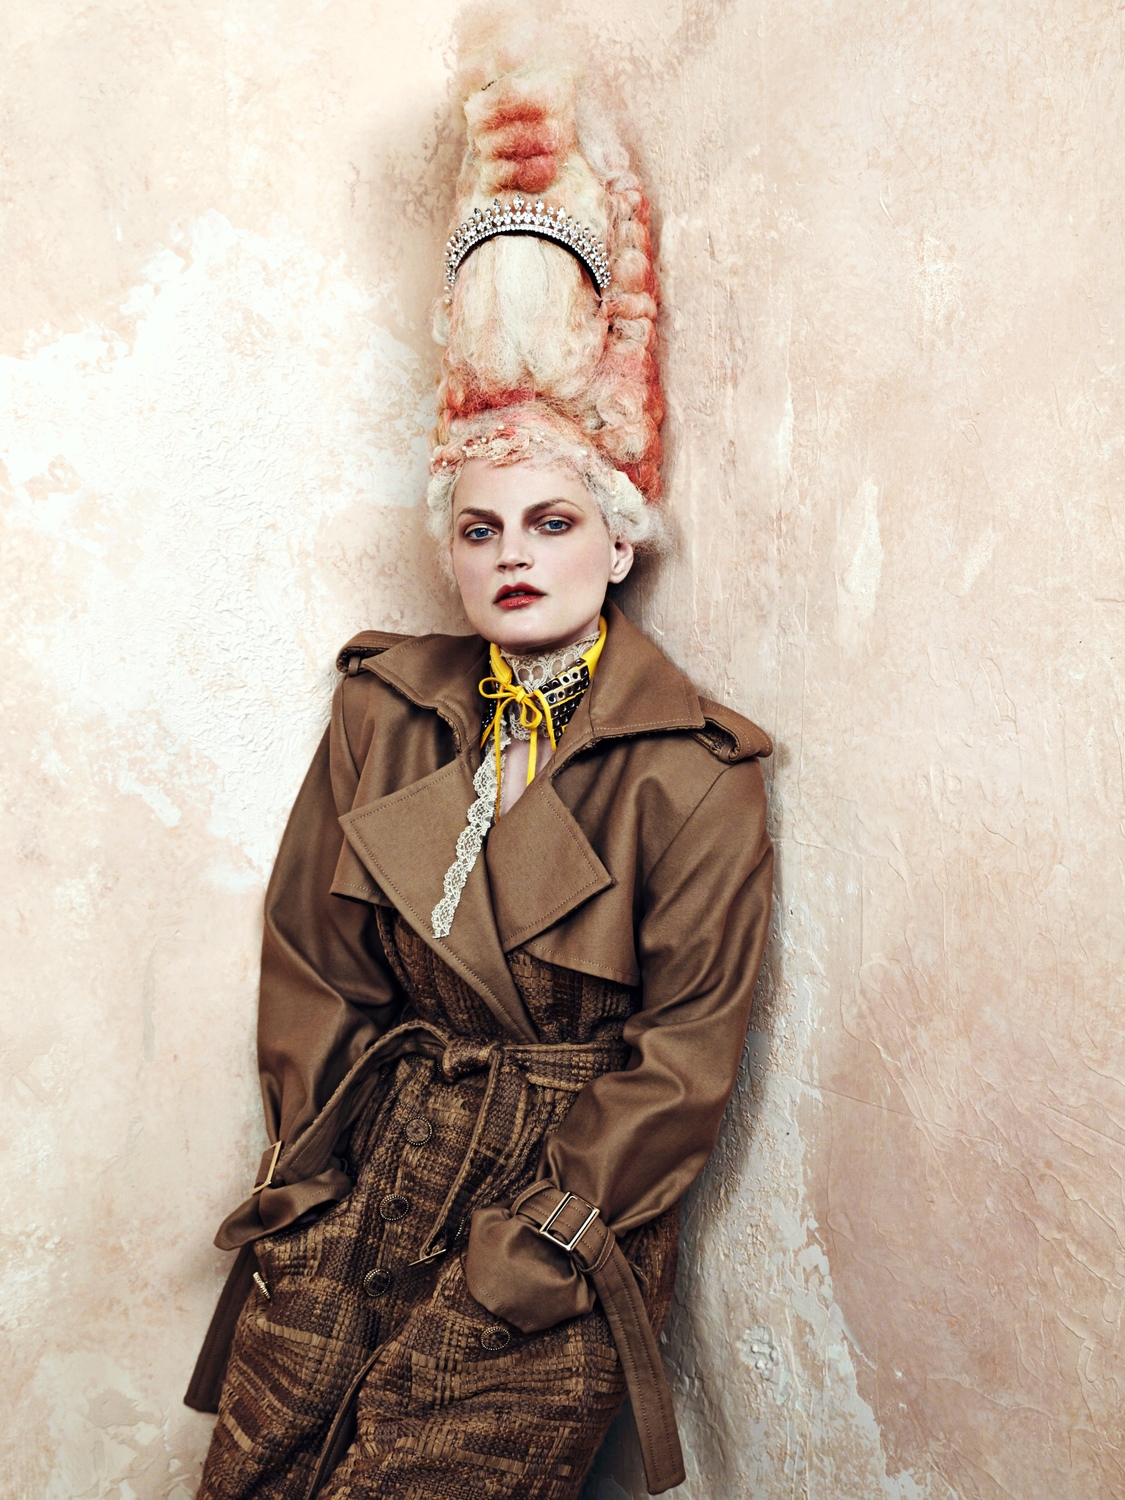 Vanity Hair CR Fashion Book Fall/Winter 2016 / Guinevere Van Seenus by Bjorn Iooss